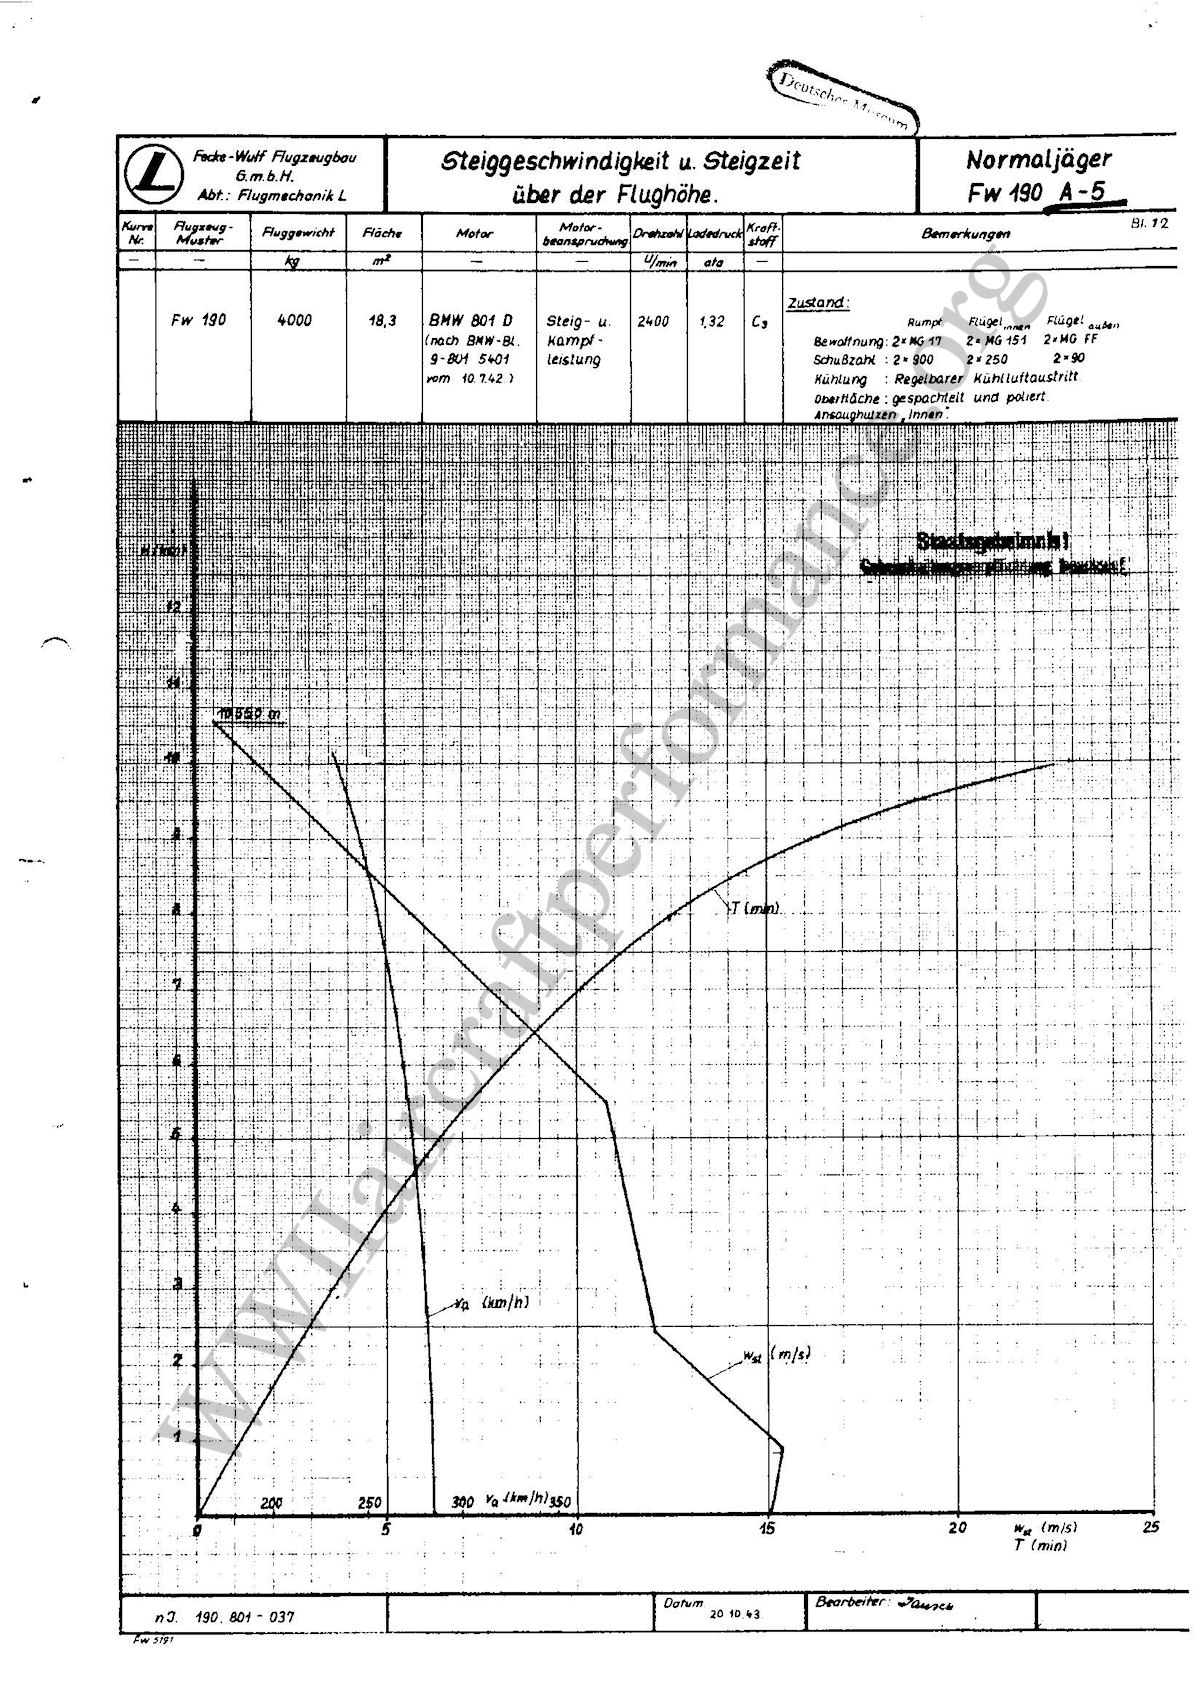 Fw 190 A 5 Performance 1966 Ford Mustang Tail Lights Wiring Diagram Der Flughhe Normaljger